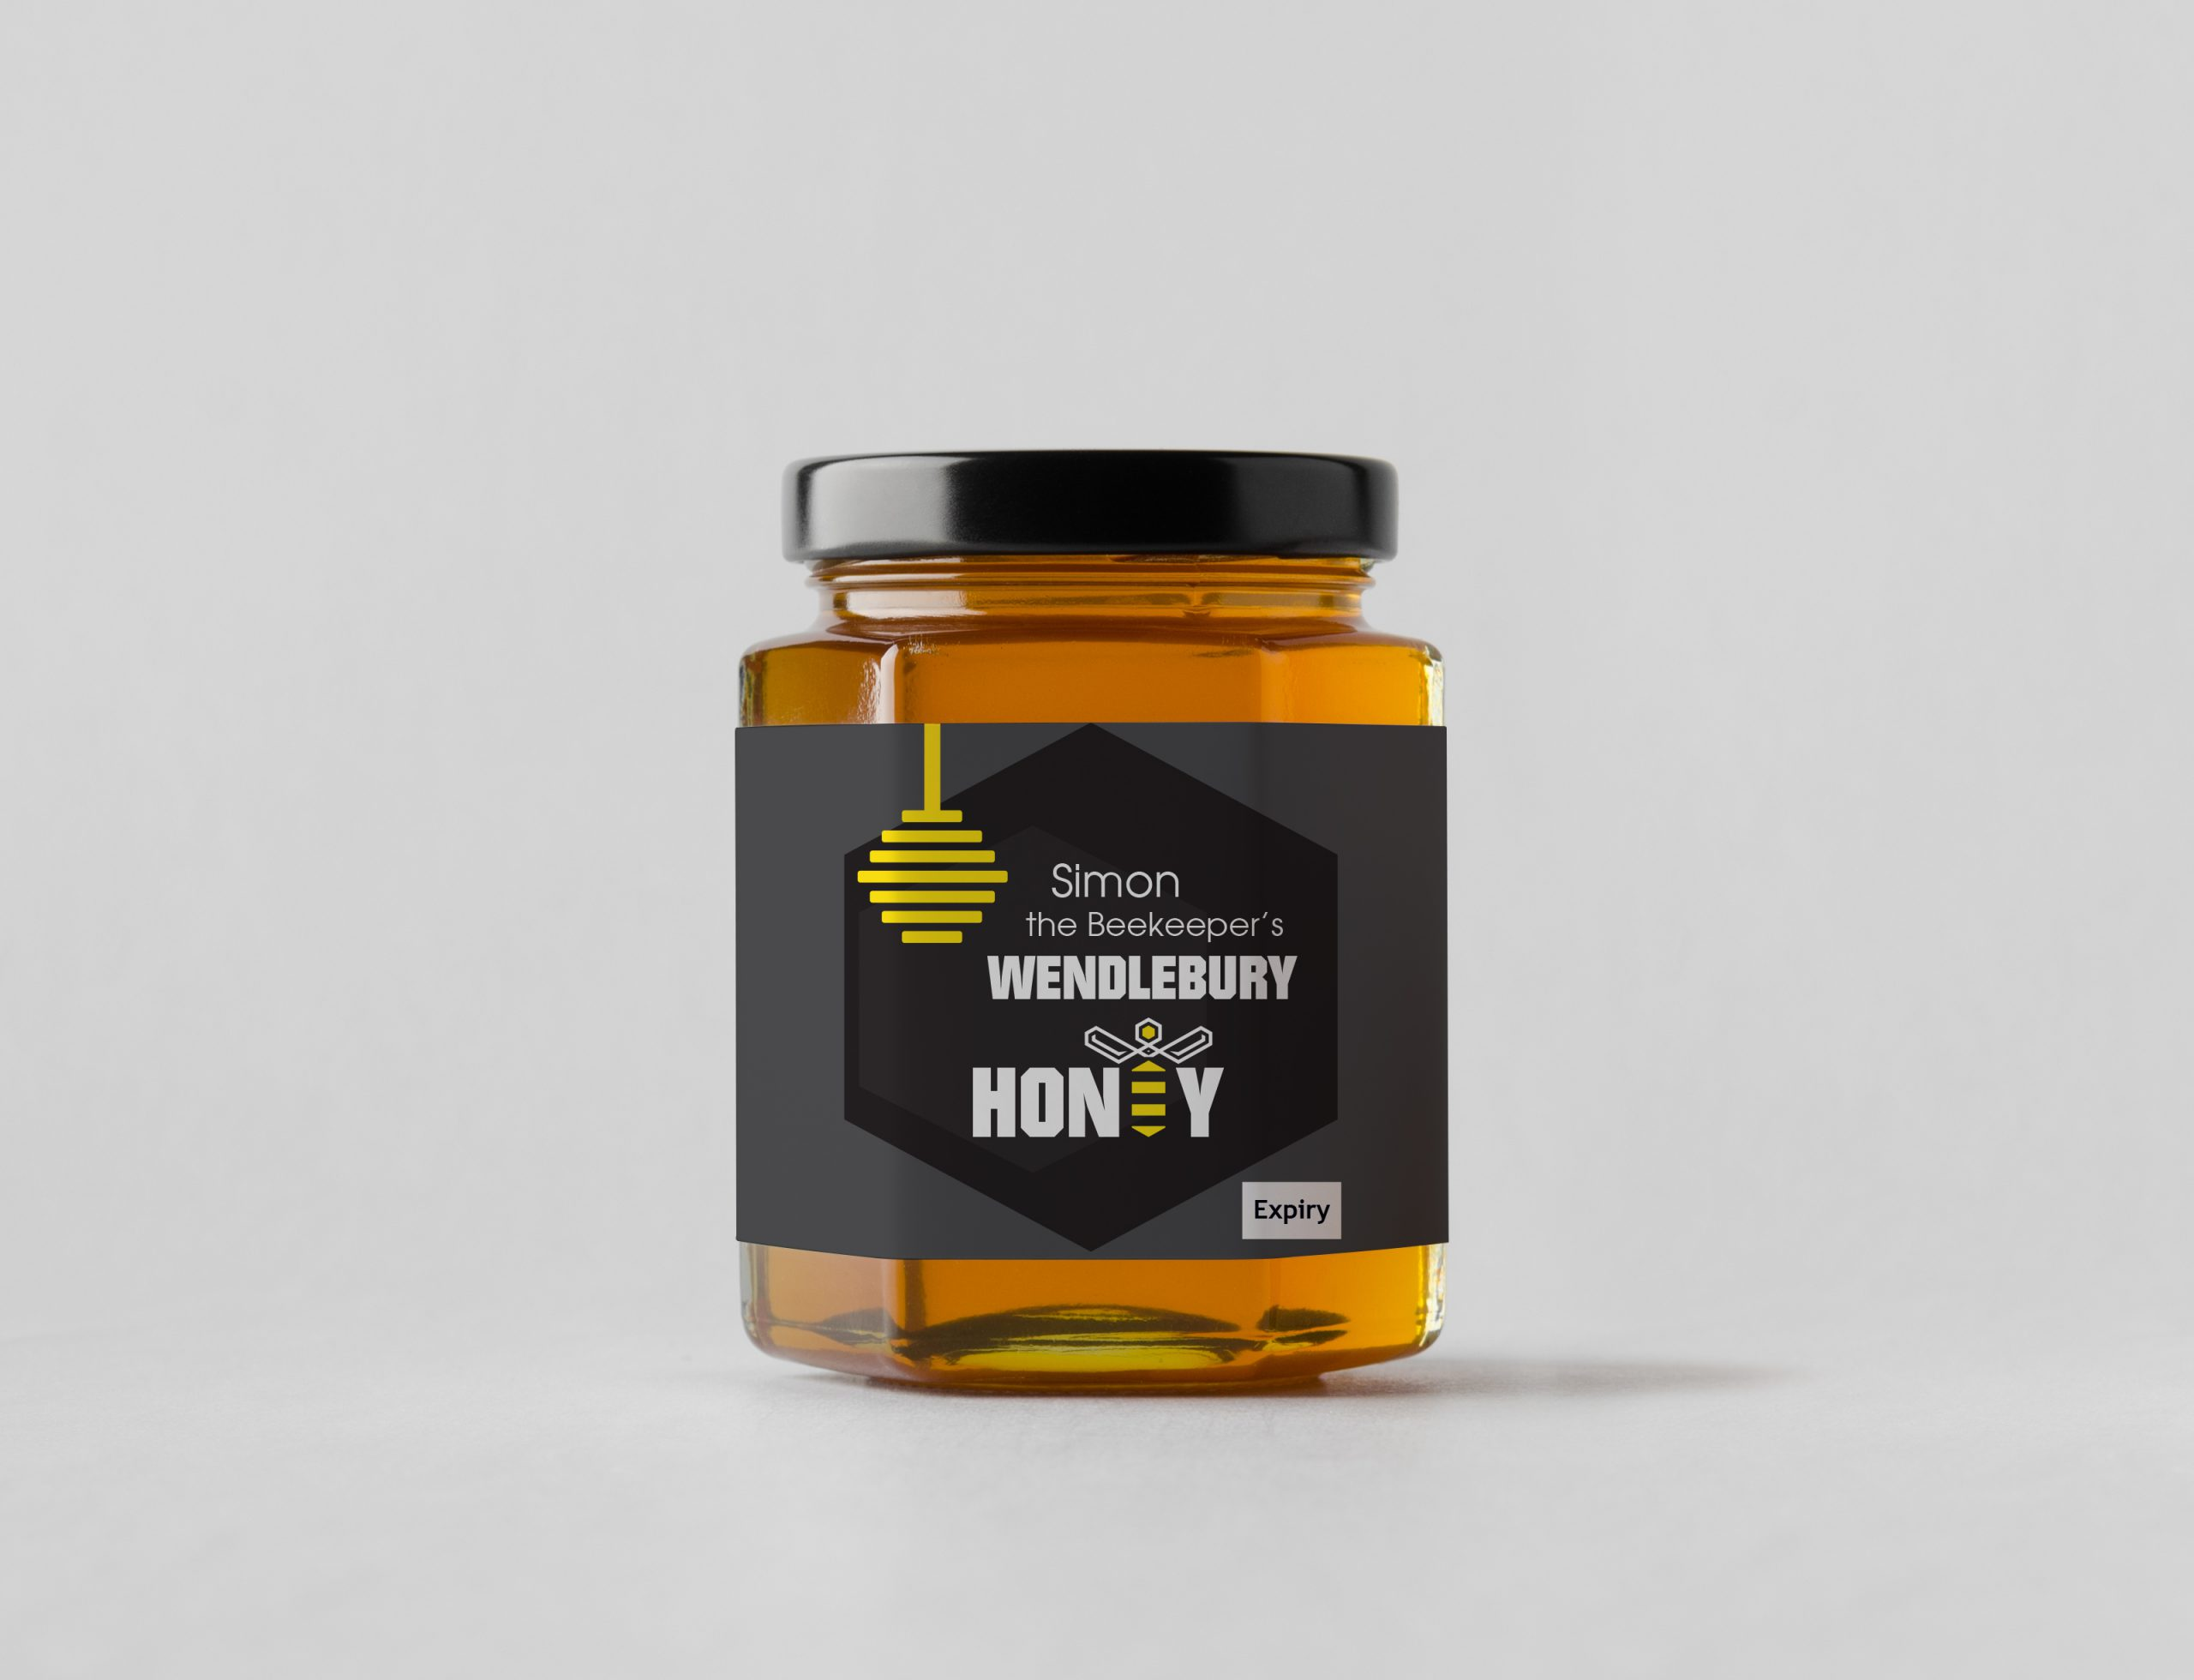 Food packaging design for jars and boxes for honey company